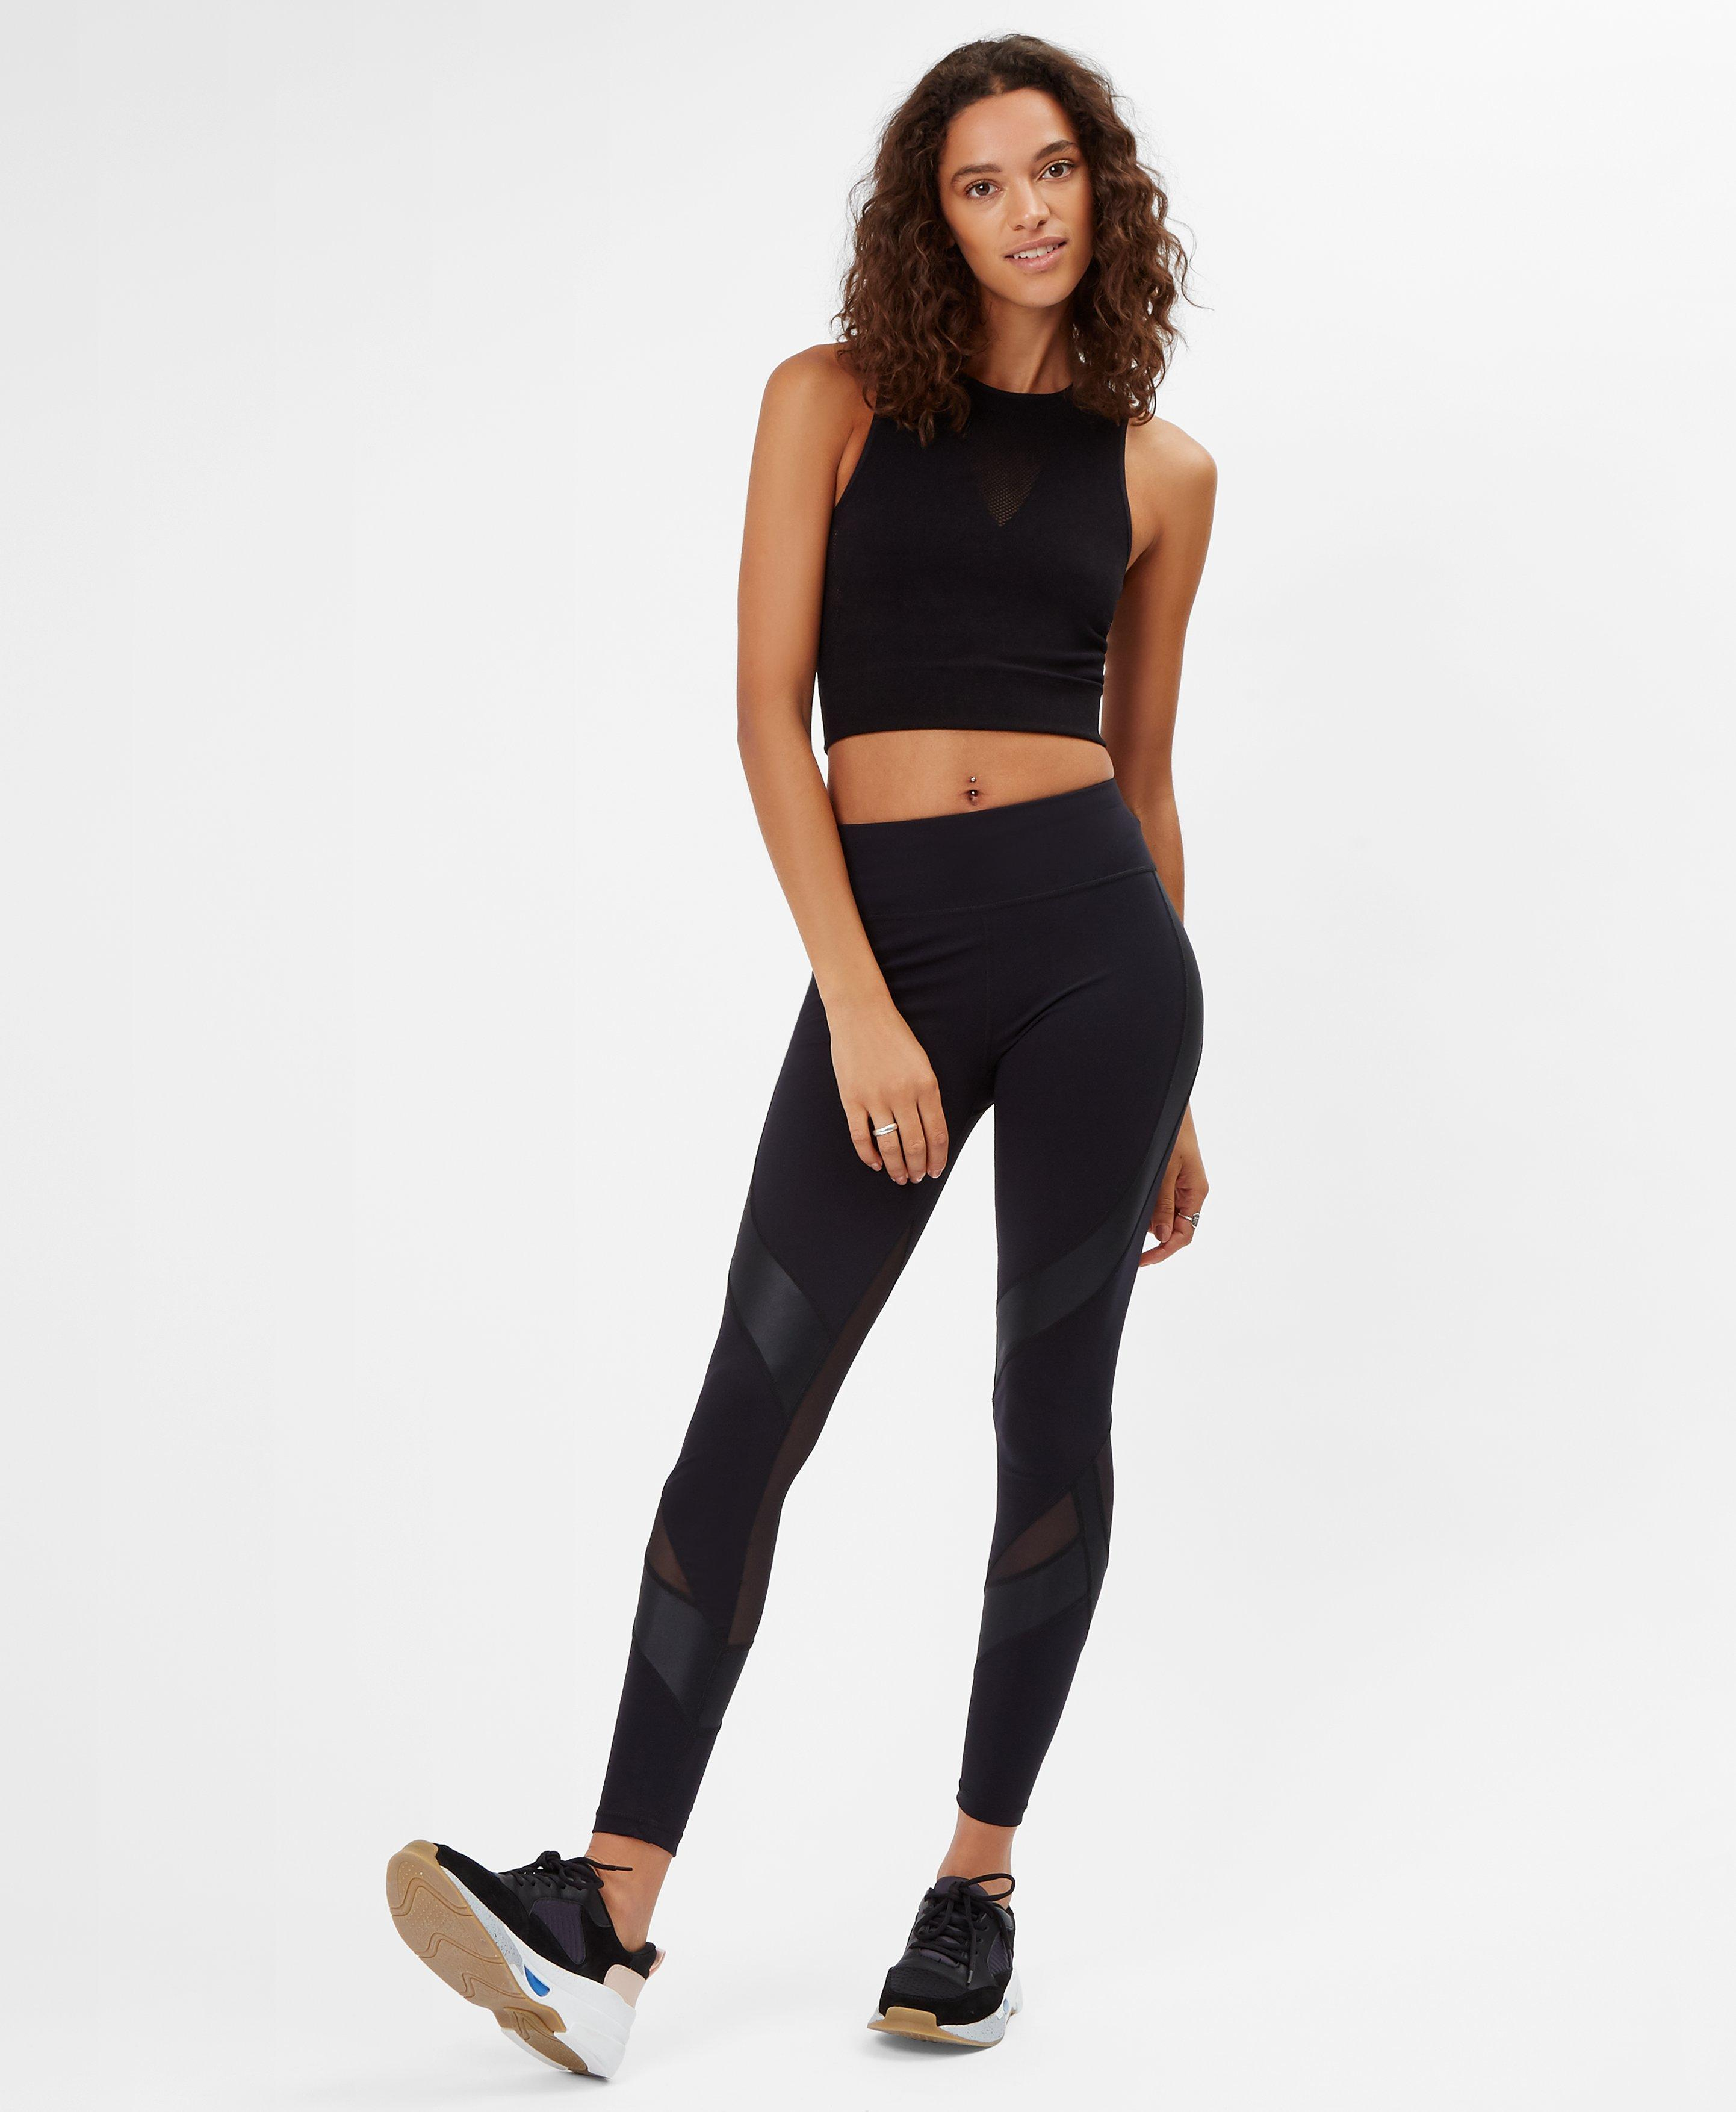 Power Black Mesh Set,  | Sweaty Betty